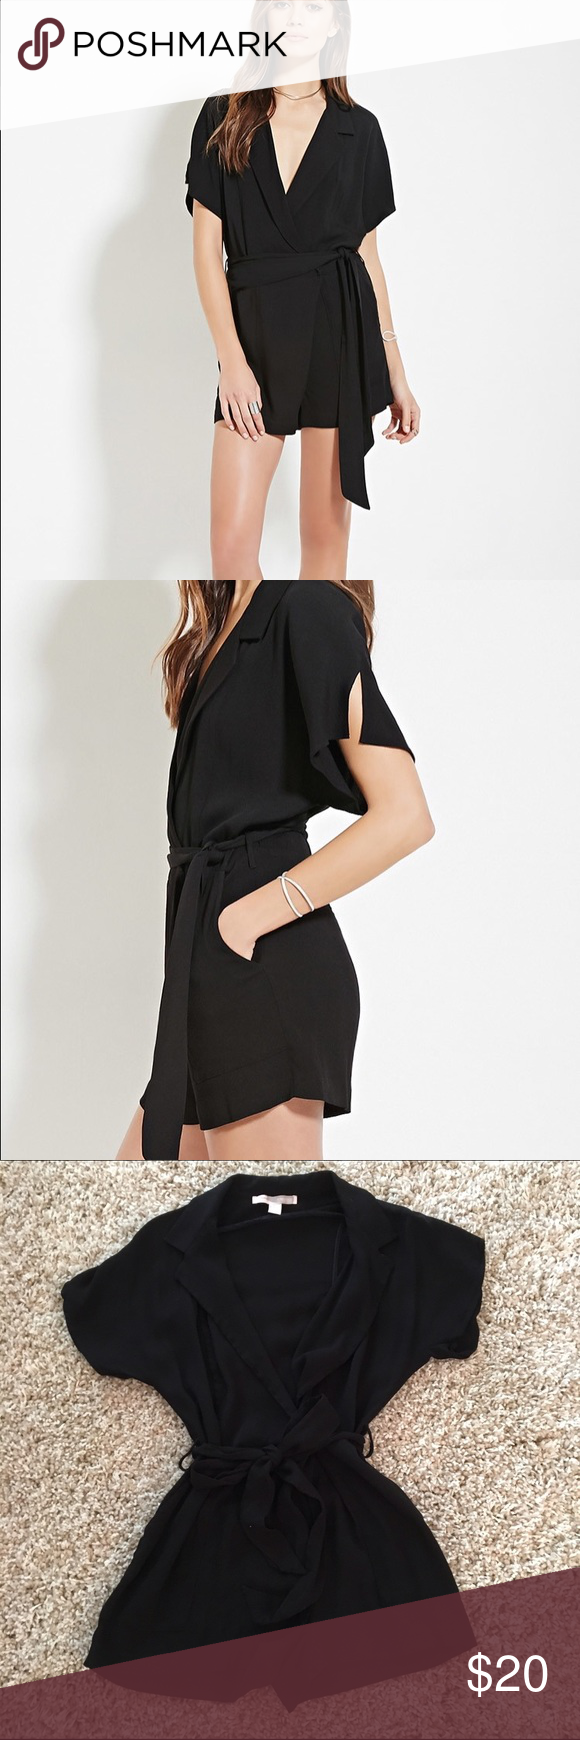 Surplice Black romper Size medium, worn once, washed once, hung to dry, no flaws. Forever 21 Dresses